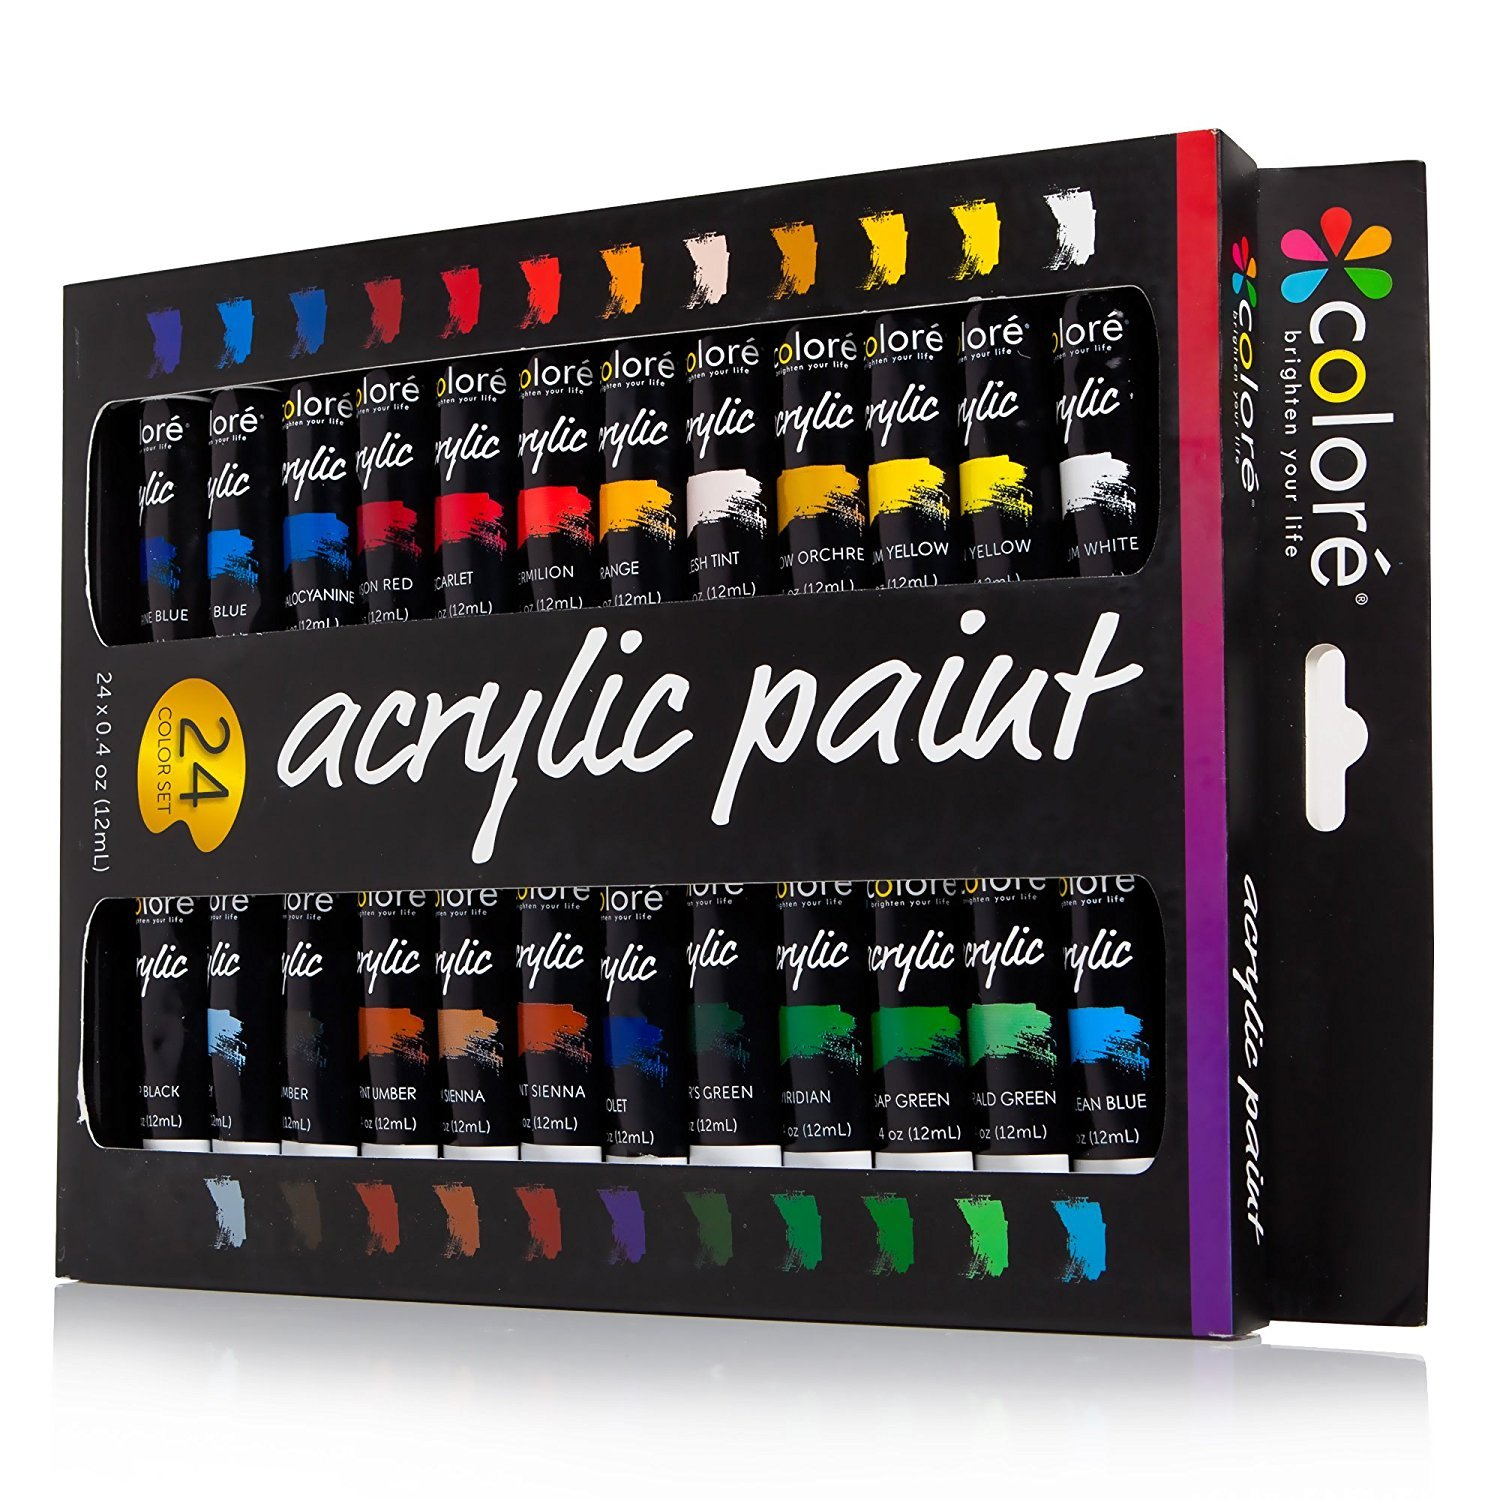 A set of acrylic paints with 24 colors.